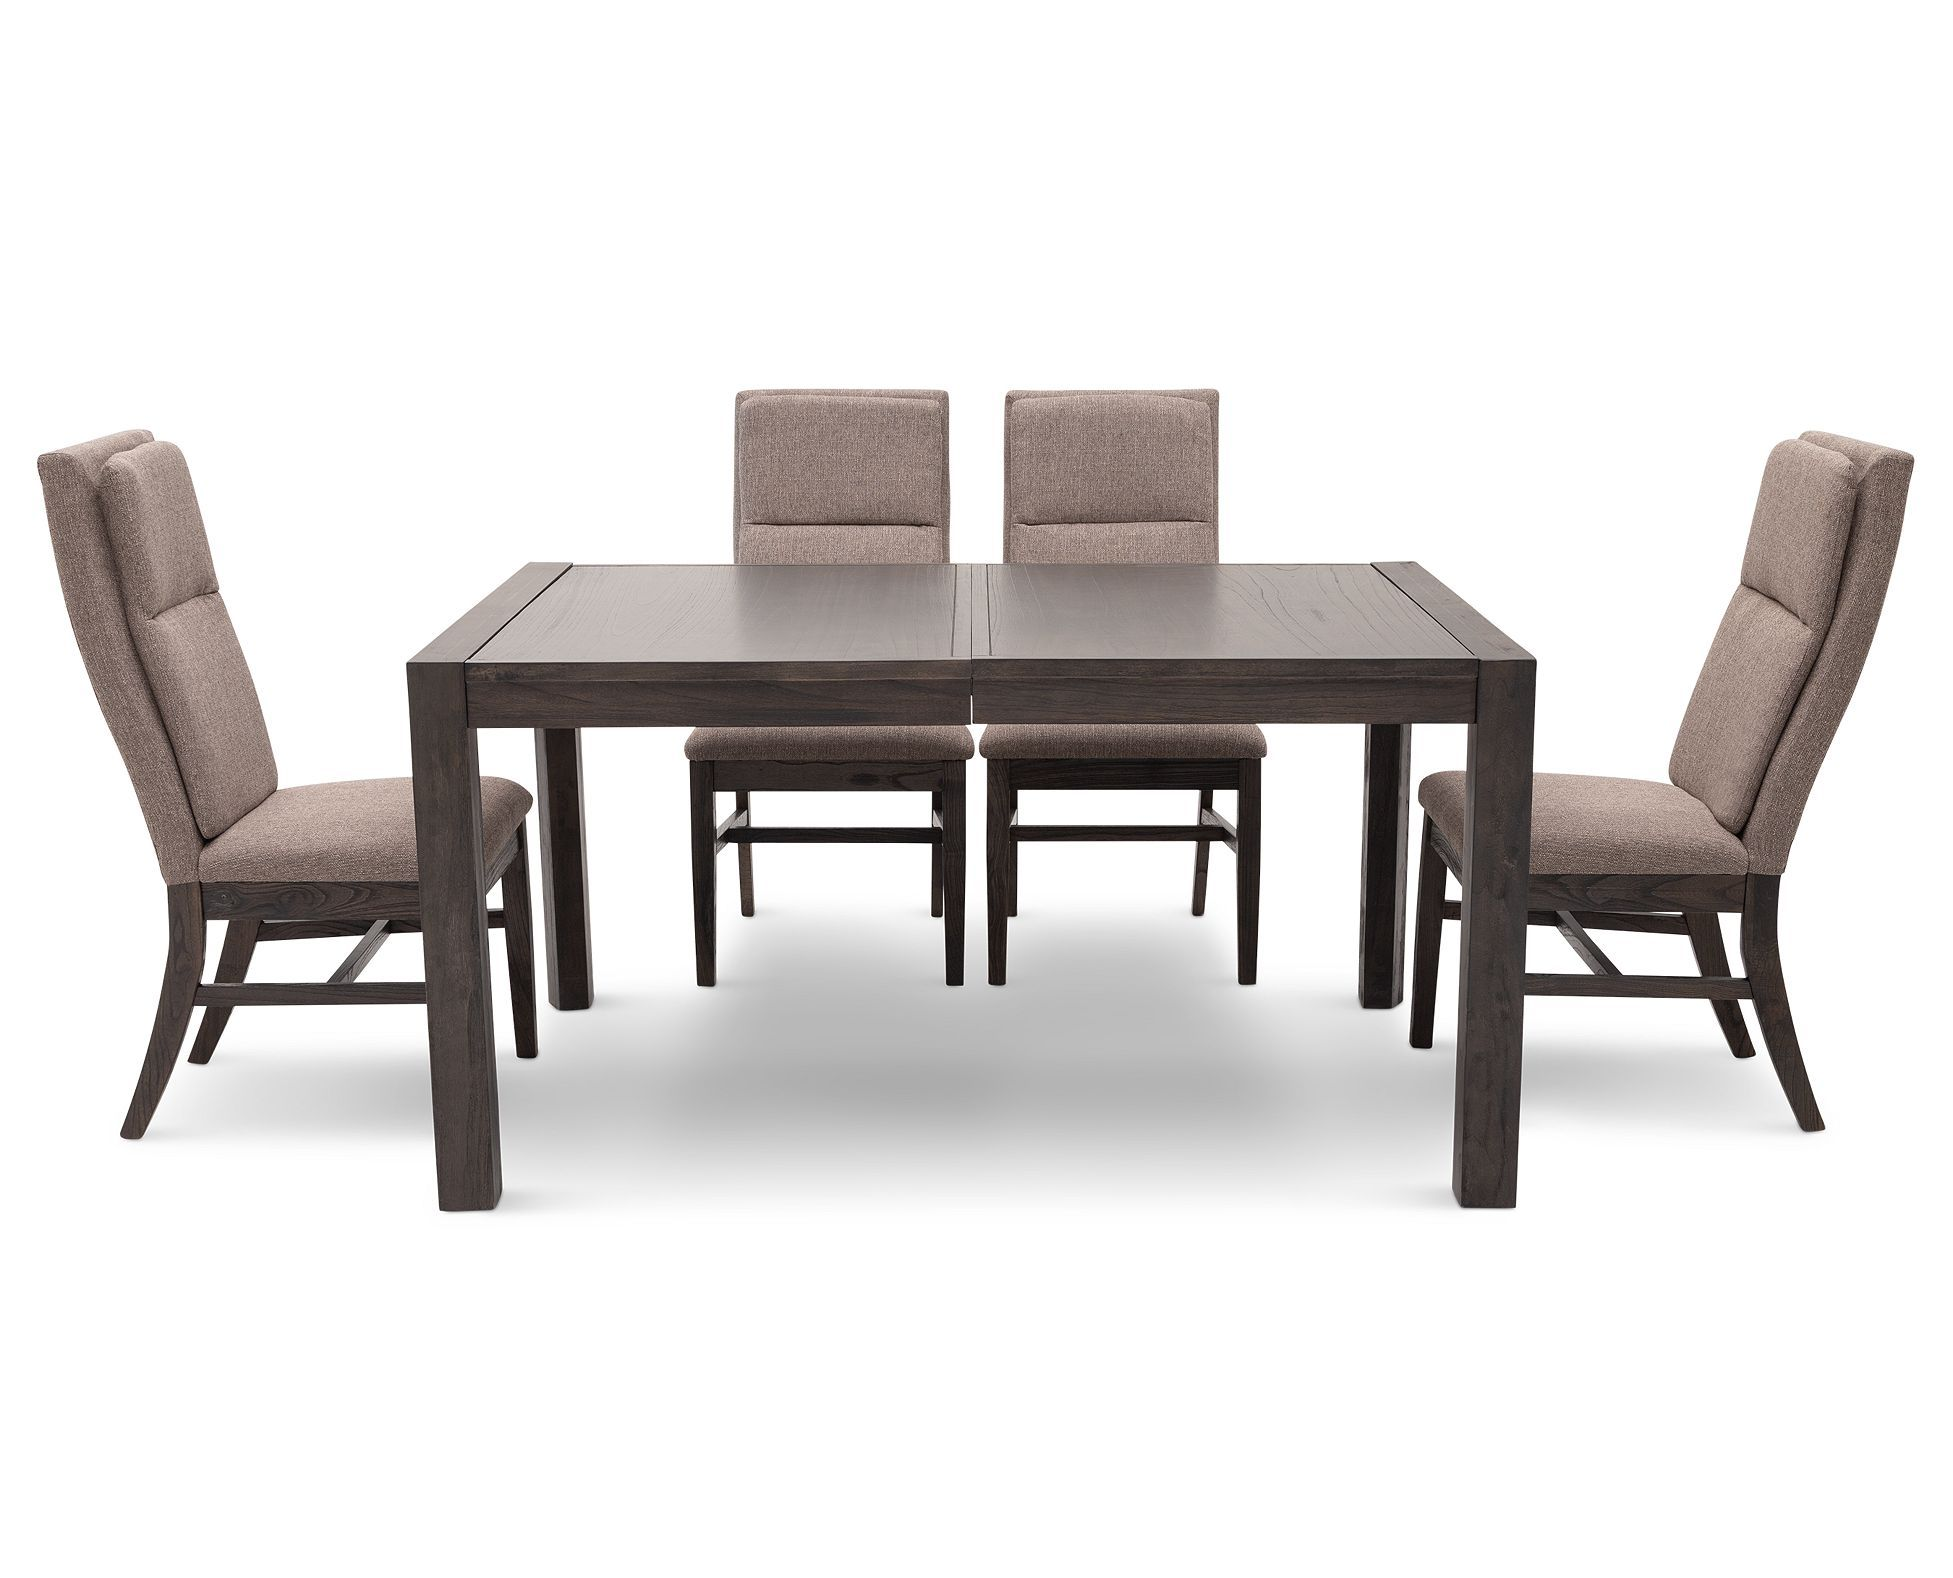 Get Clearance Pricing On The Streamlined Denmark Dining Set In Wire Brushed Cool Gray Finish For A Limited Time Rowe Furniture Dining Room Sets Furniture